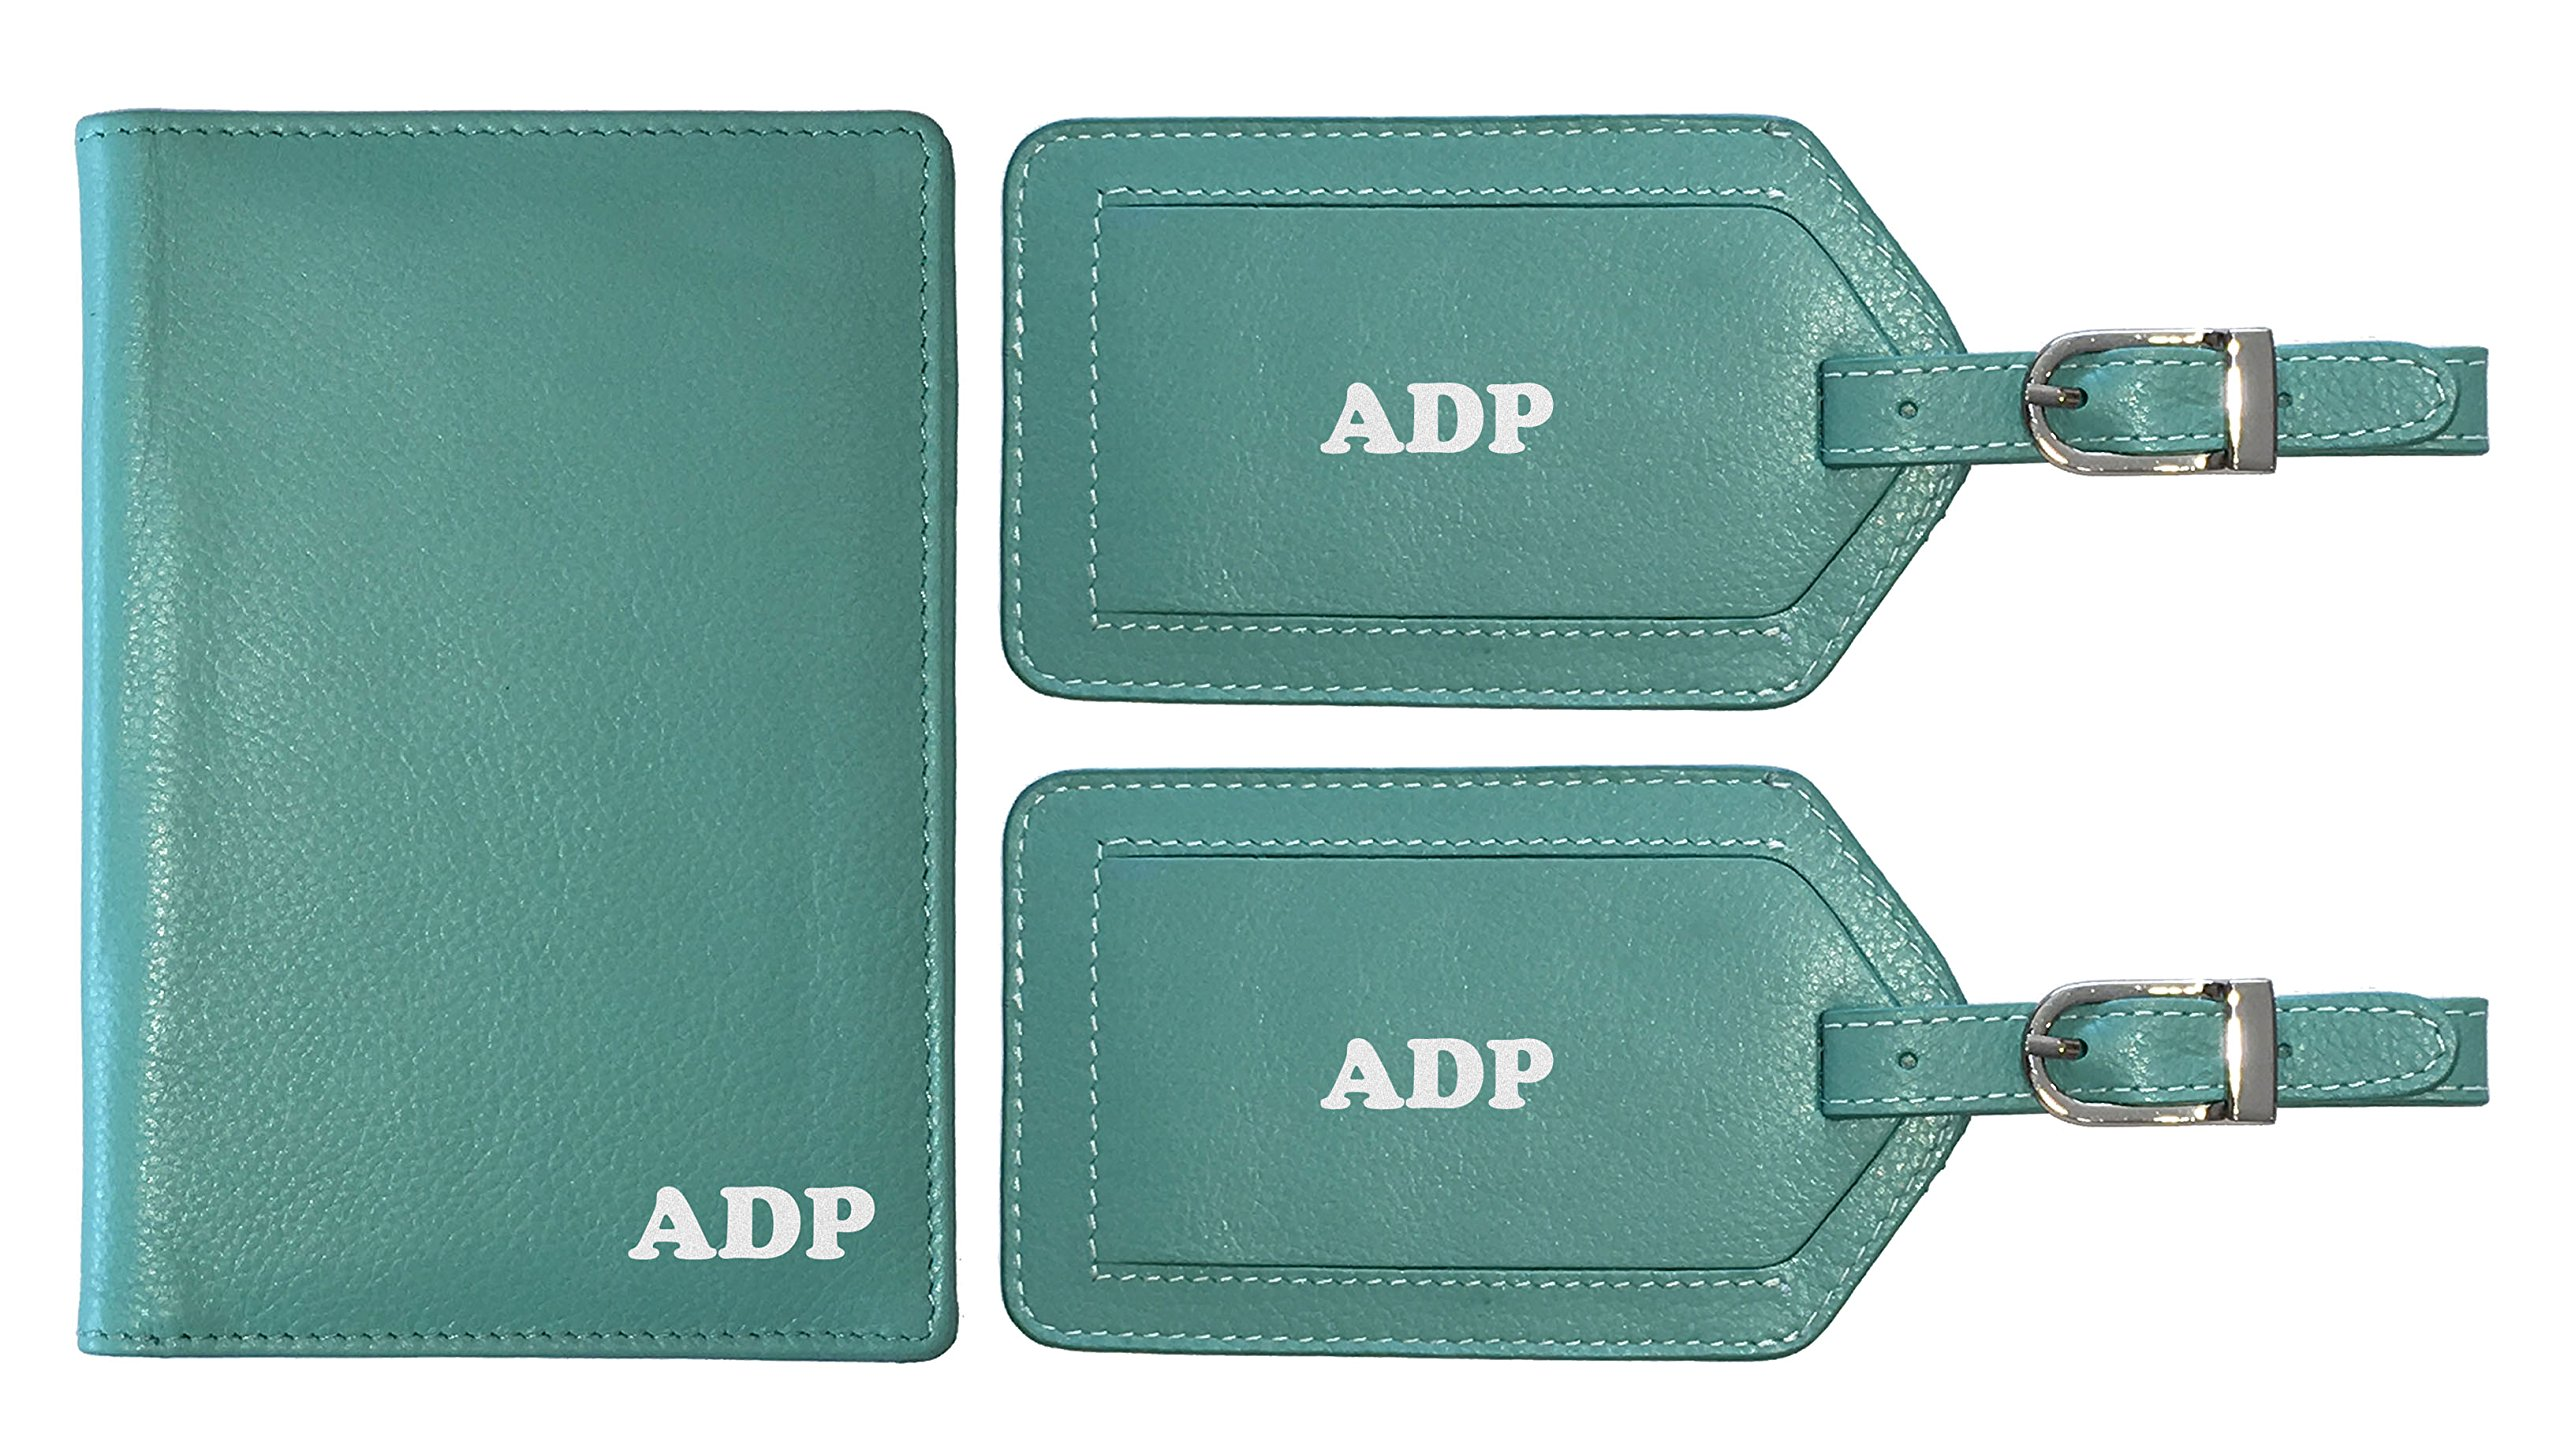 Personalized Monogrammed Turquoise Leather RFID Passport Wallet and 2 Luggage Tags